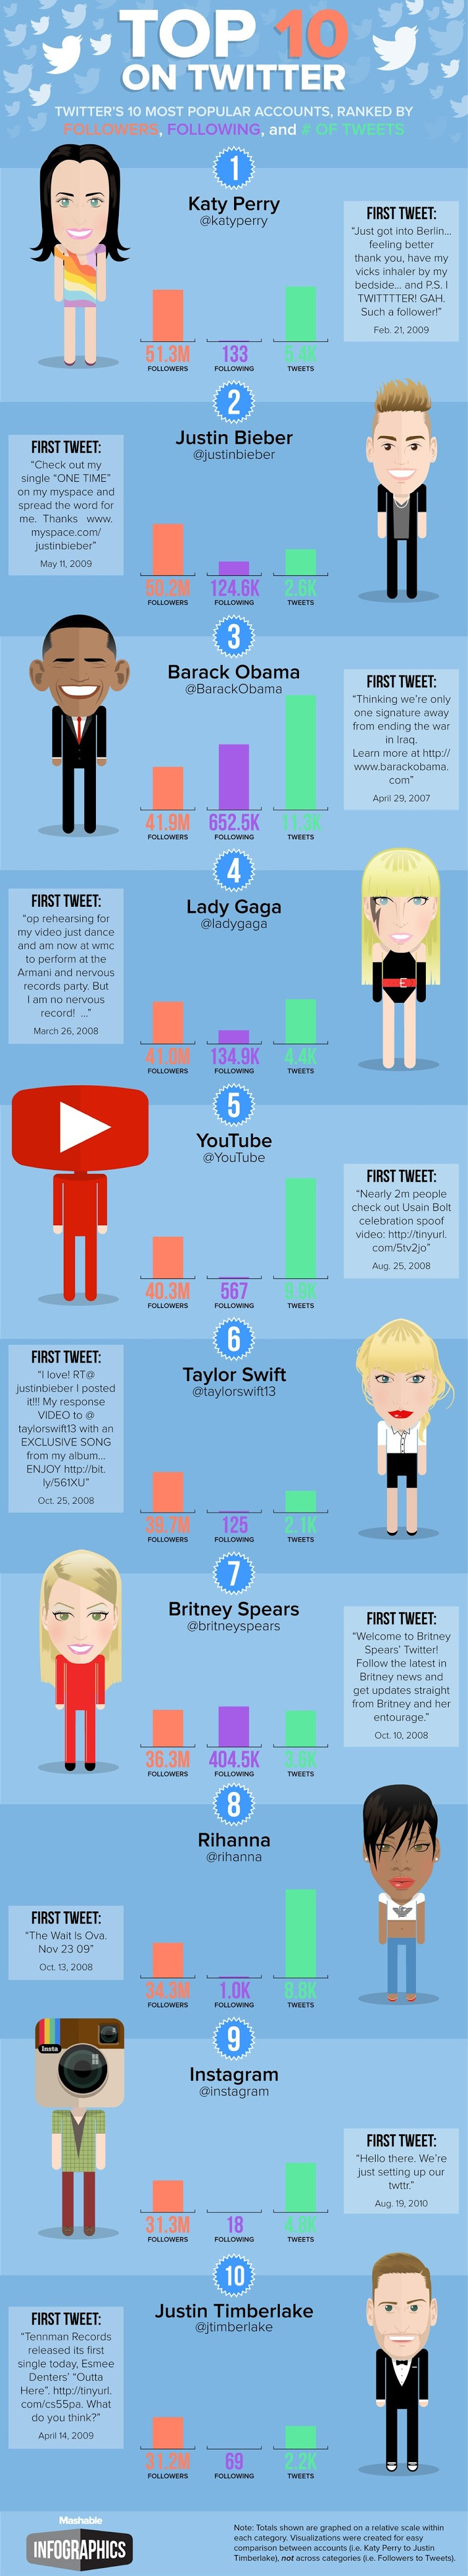 The Top 10 Most-Followed Twitter Accounts 2014 - infographic